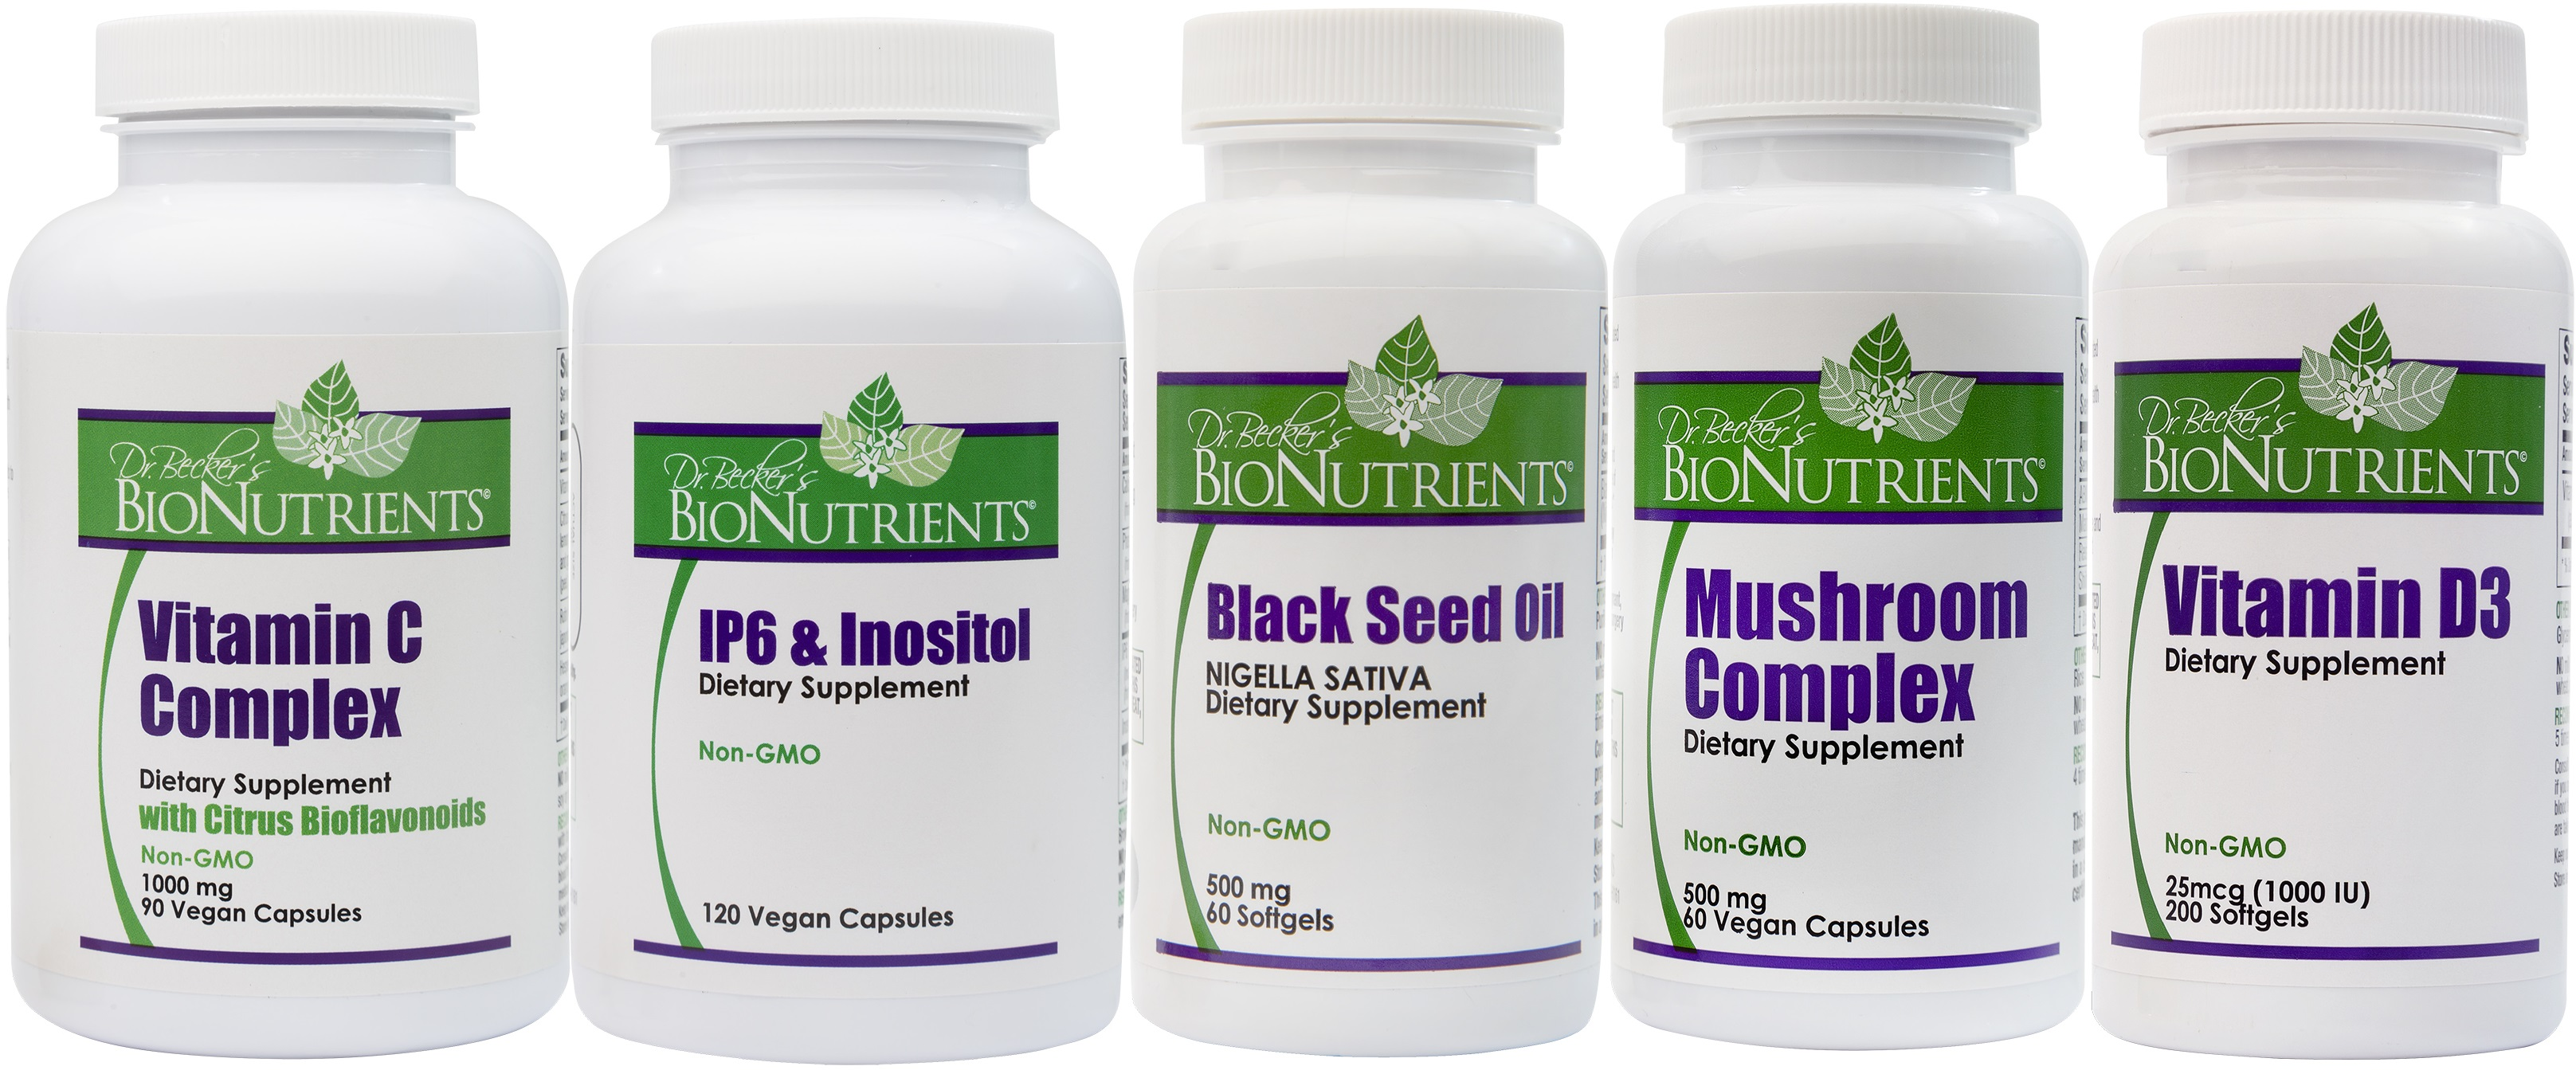 Nutritional Immunity Kit - 50% OFF! - While Supplies Last